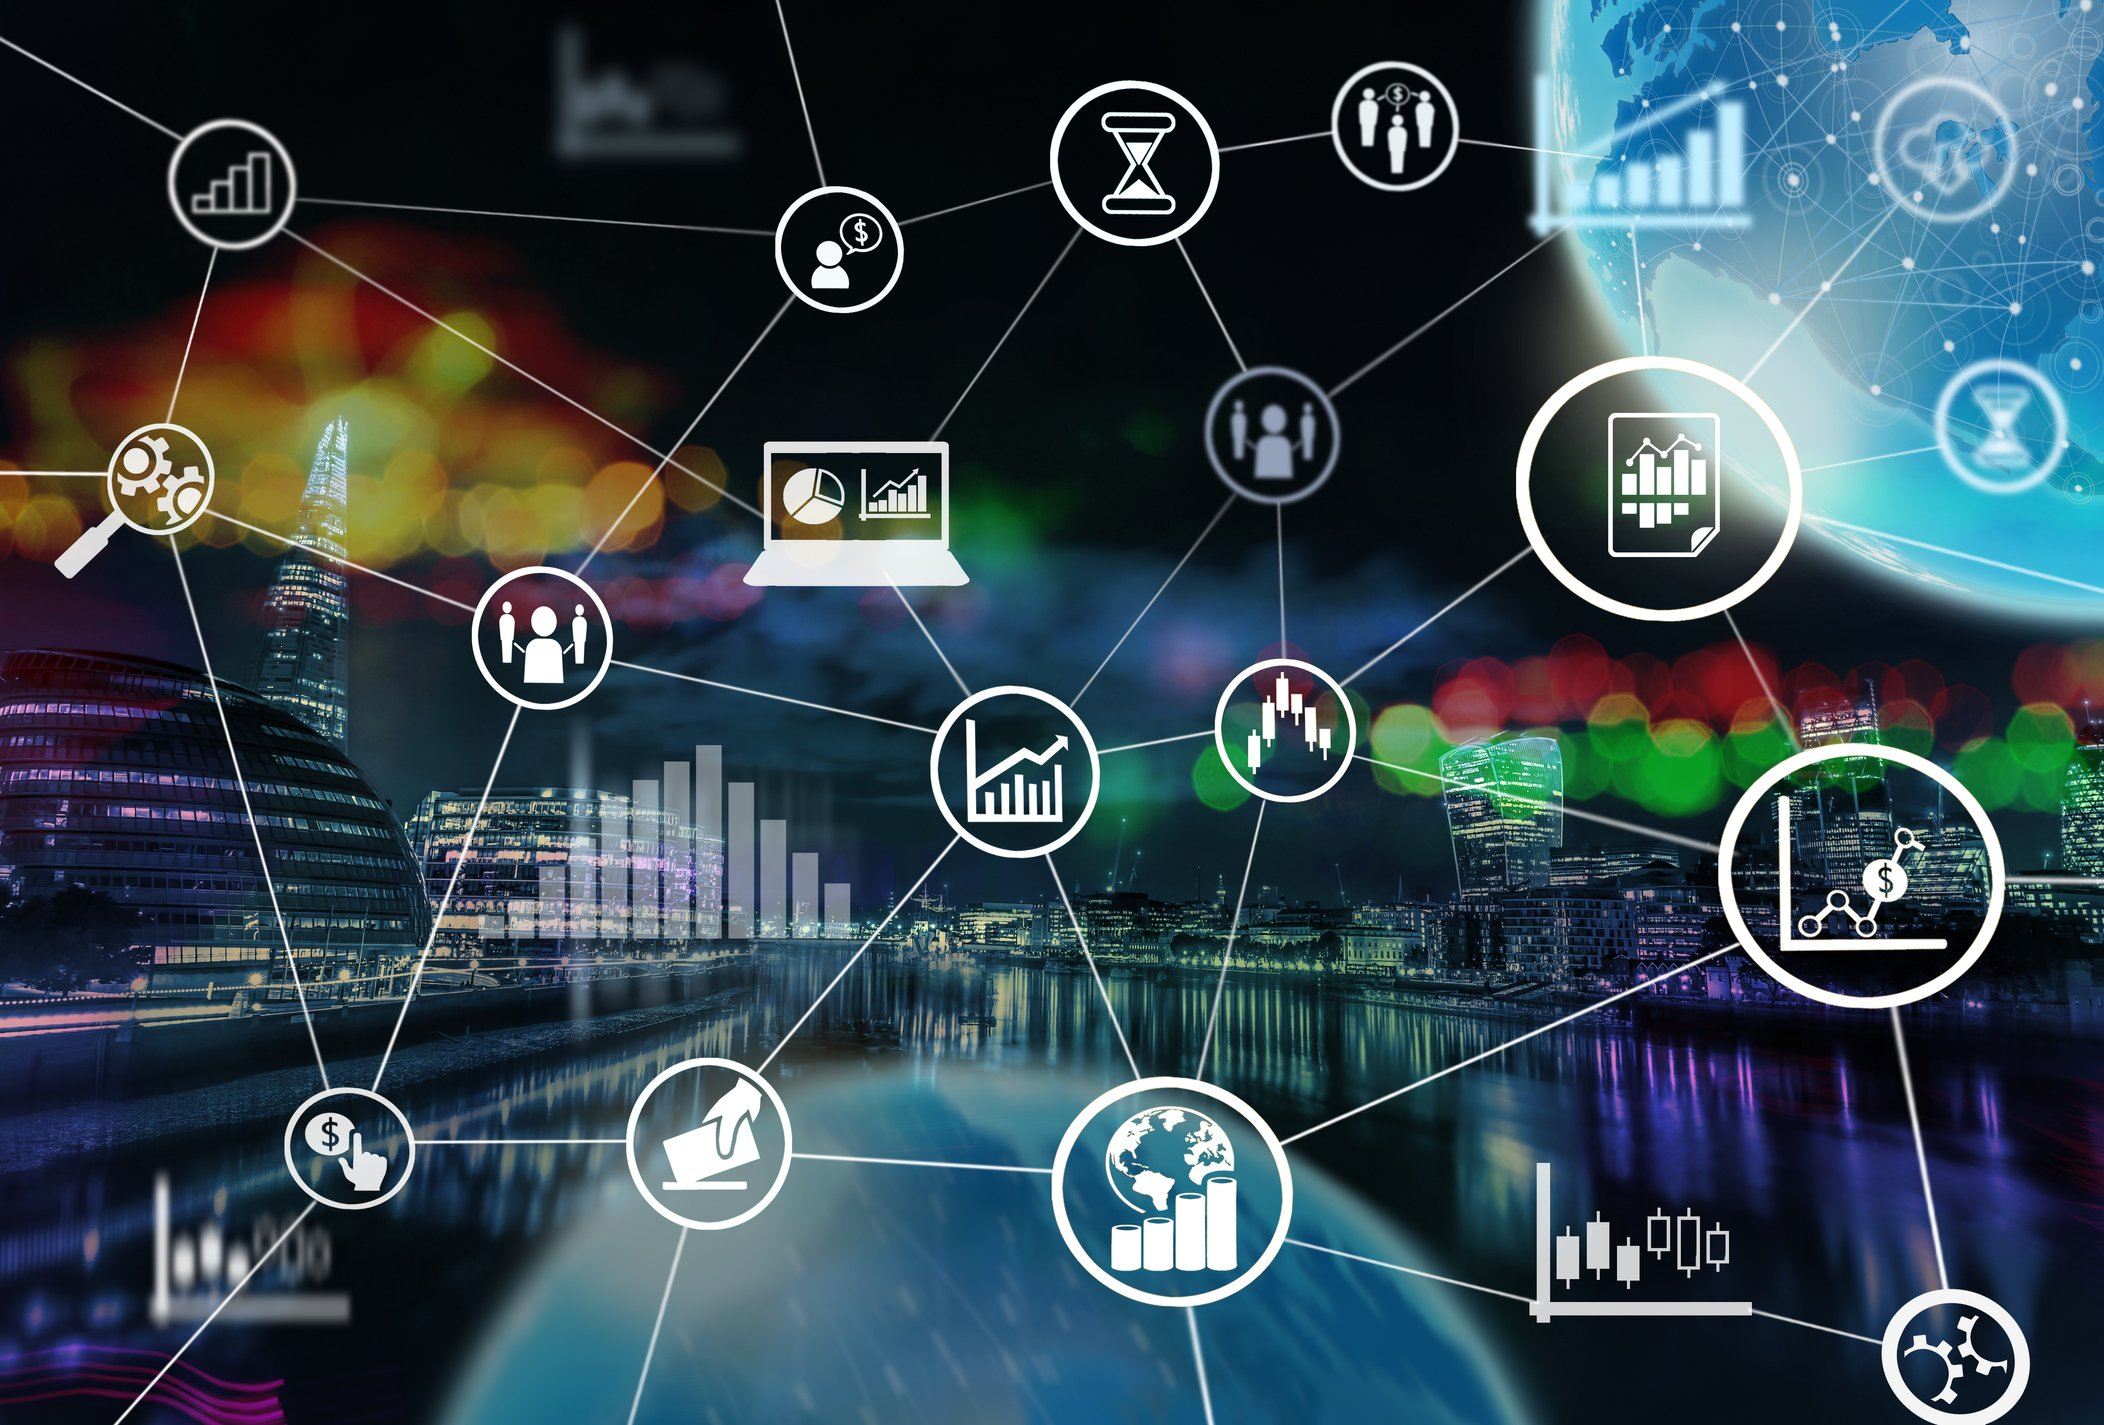 What are the Advantages of Digital Internet?